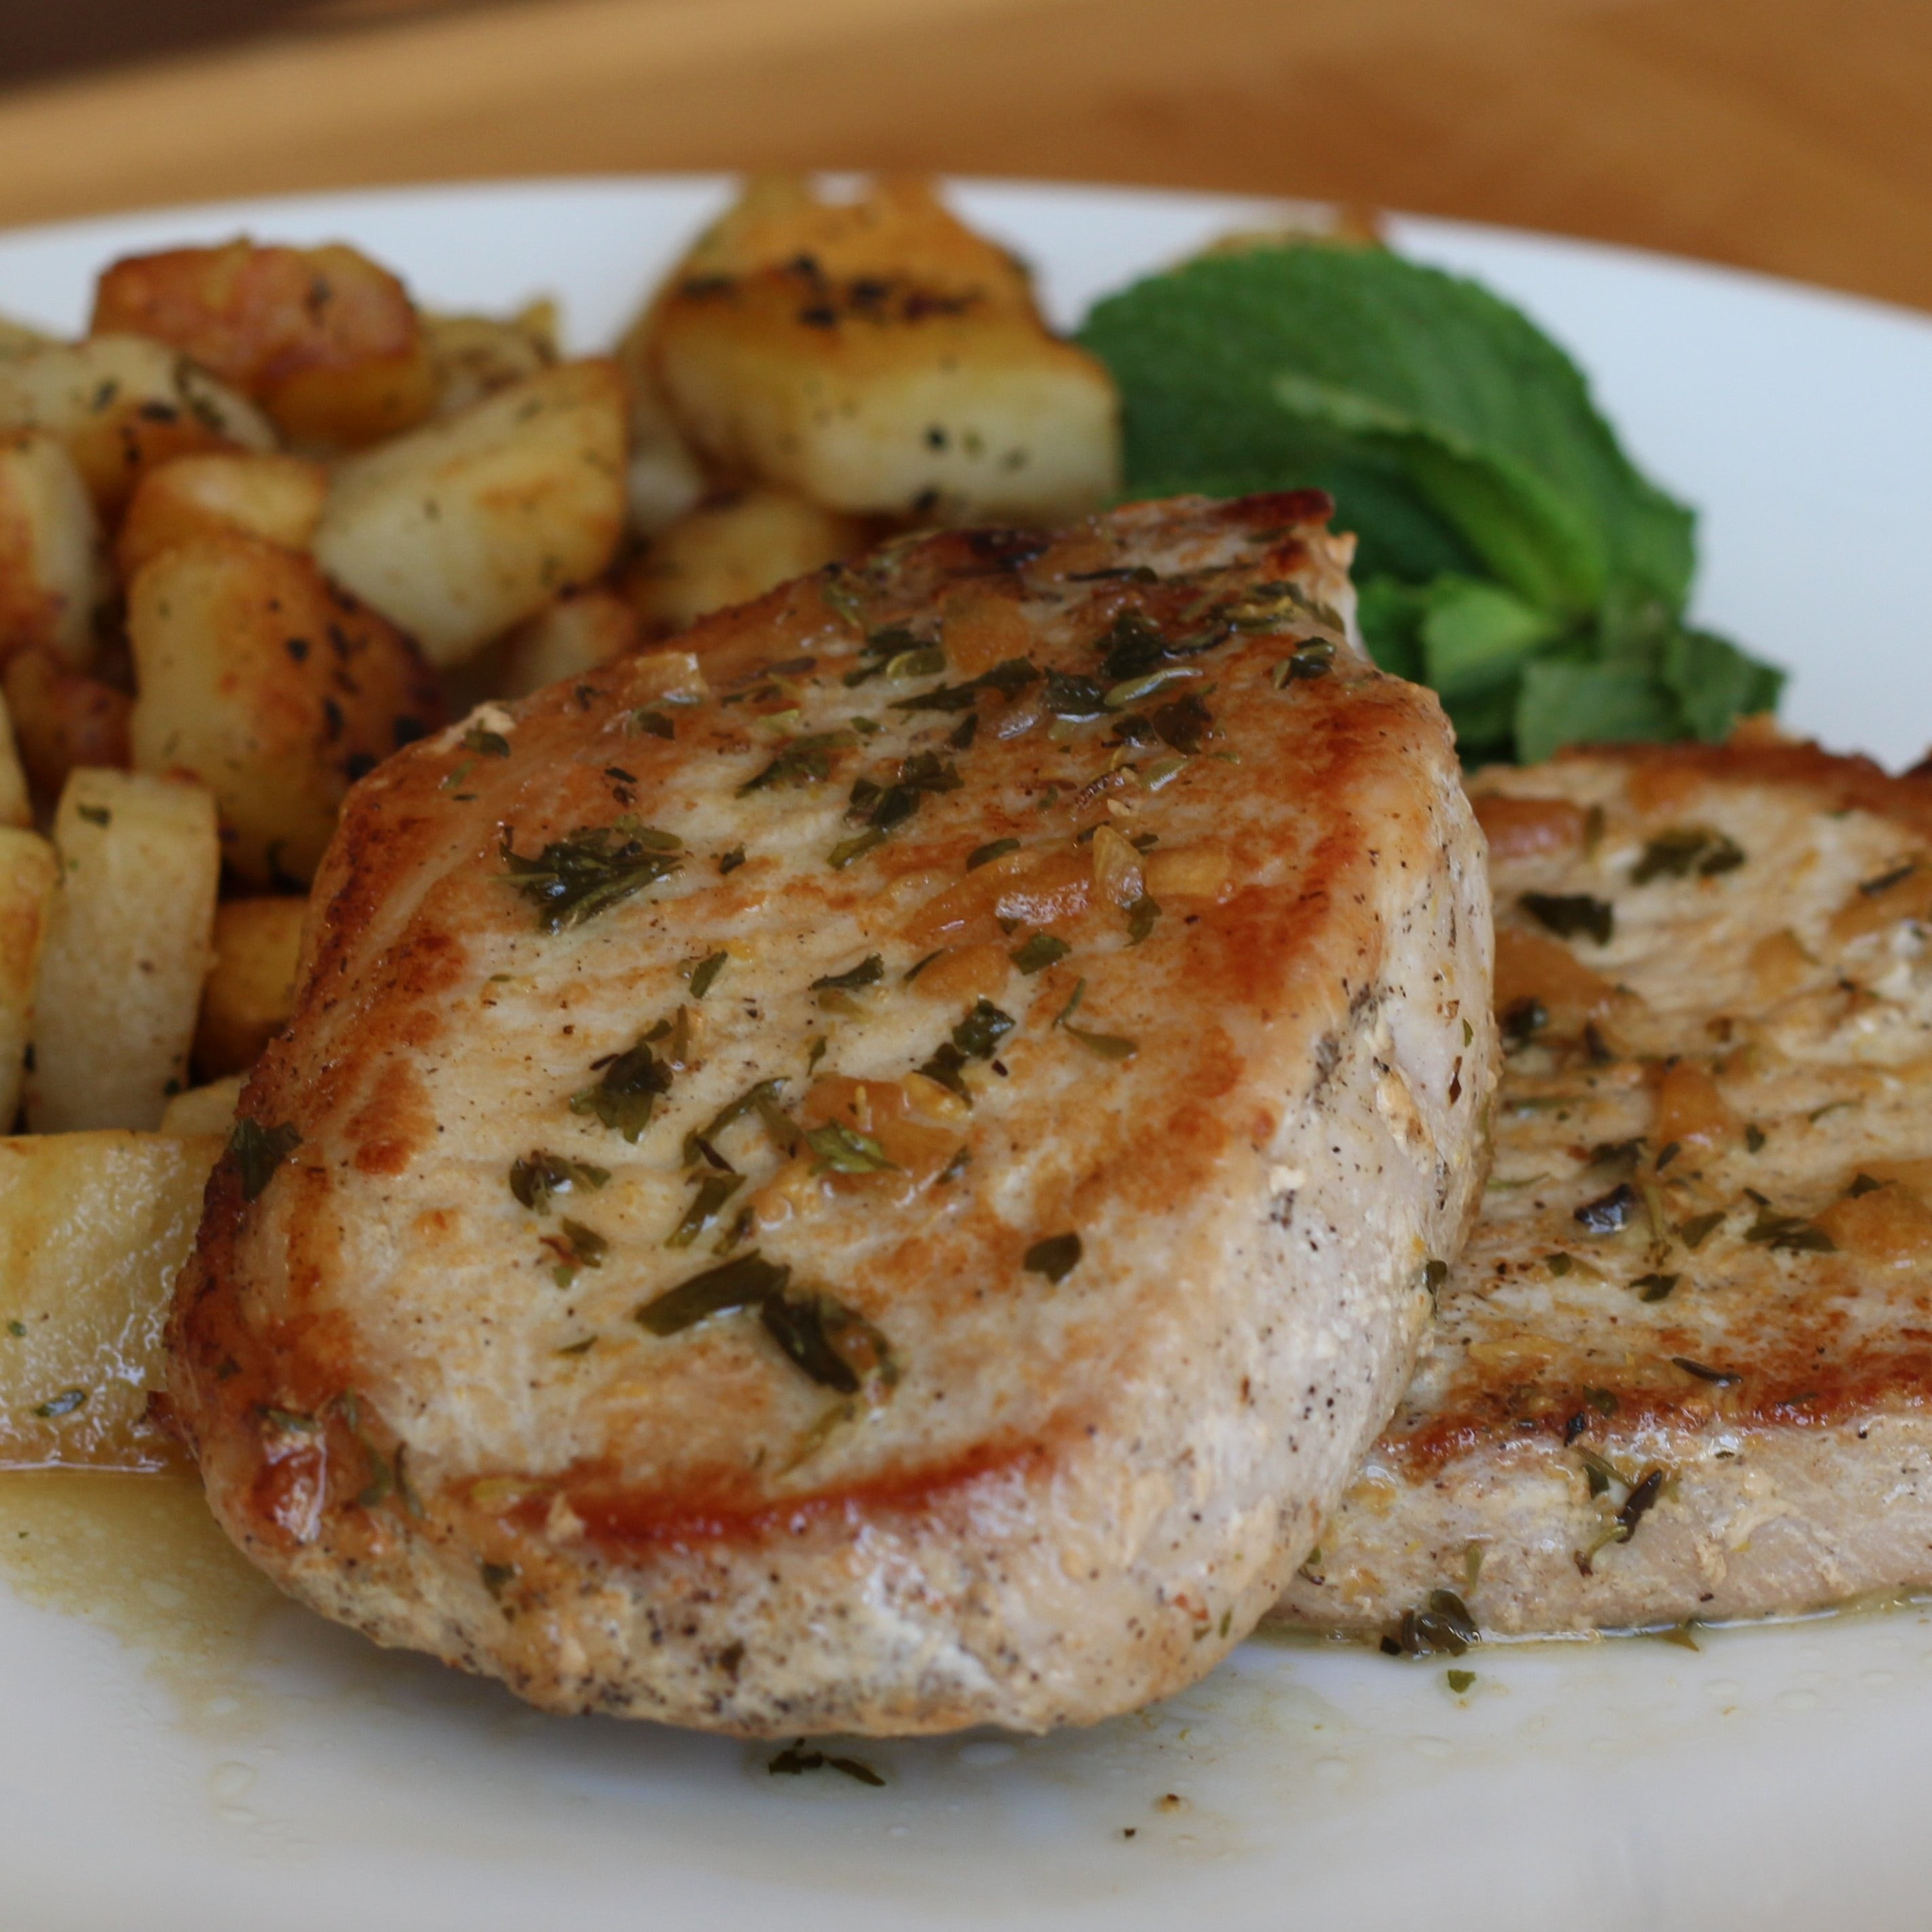 Pan-Seared Pork Chops with Herb Butter Sauce and Garlic Home Fries